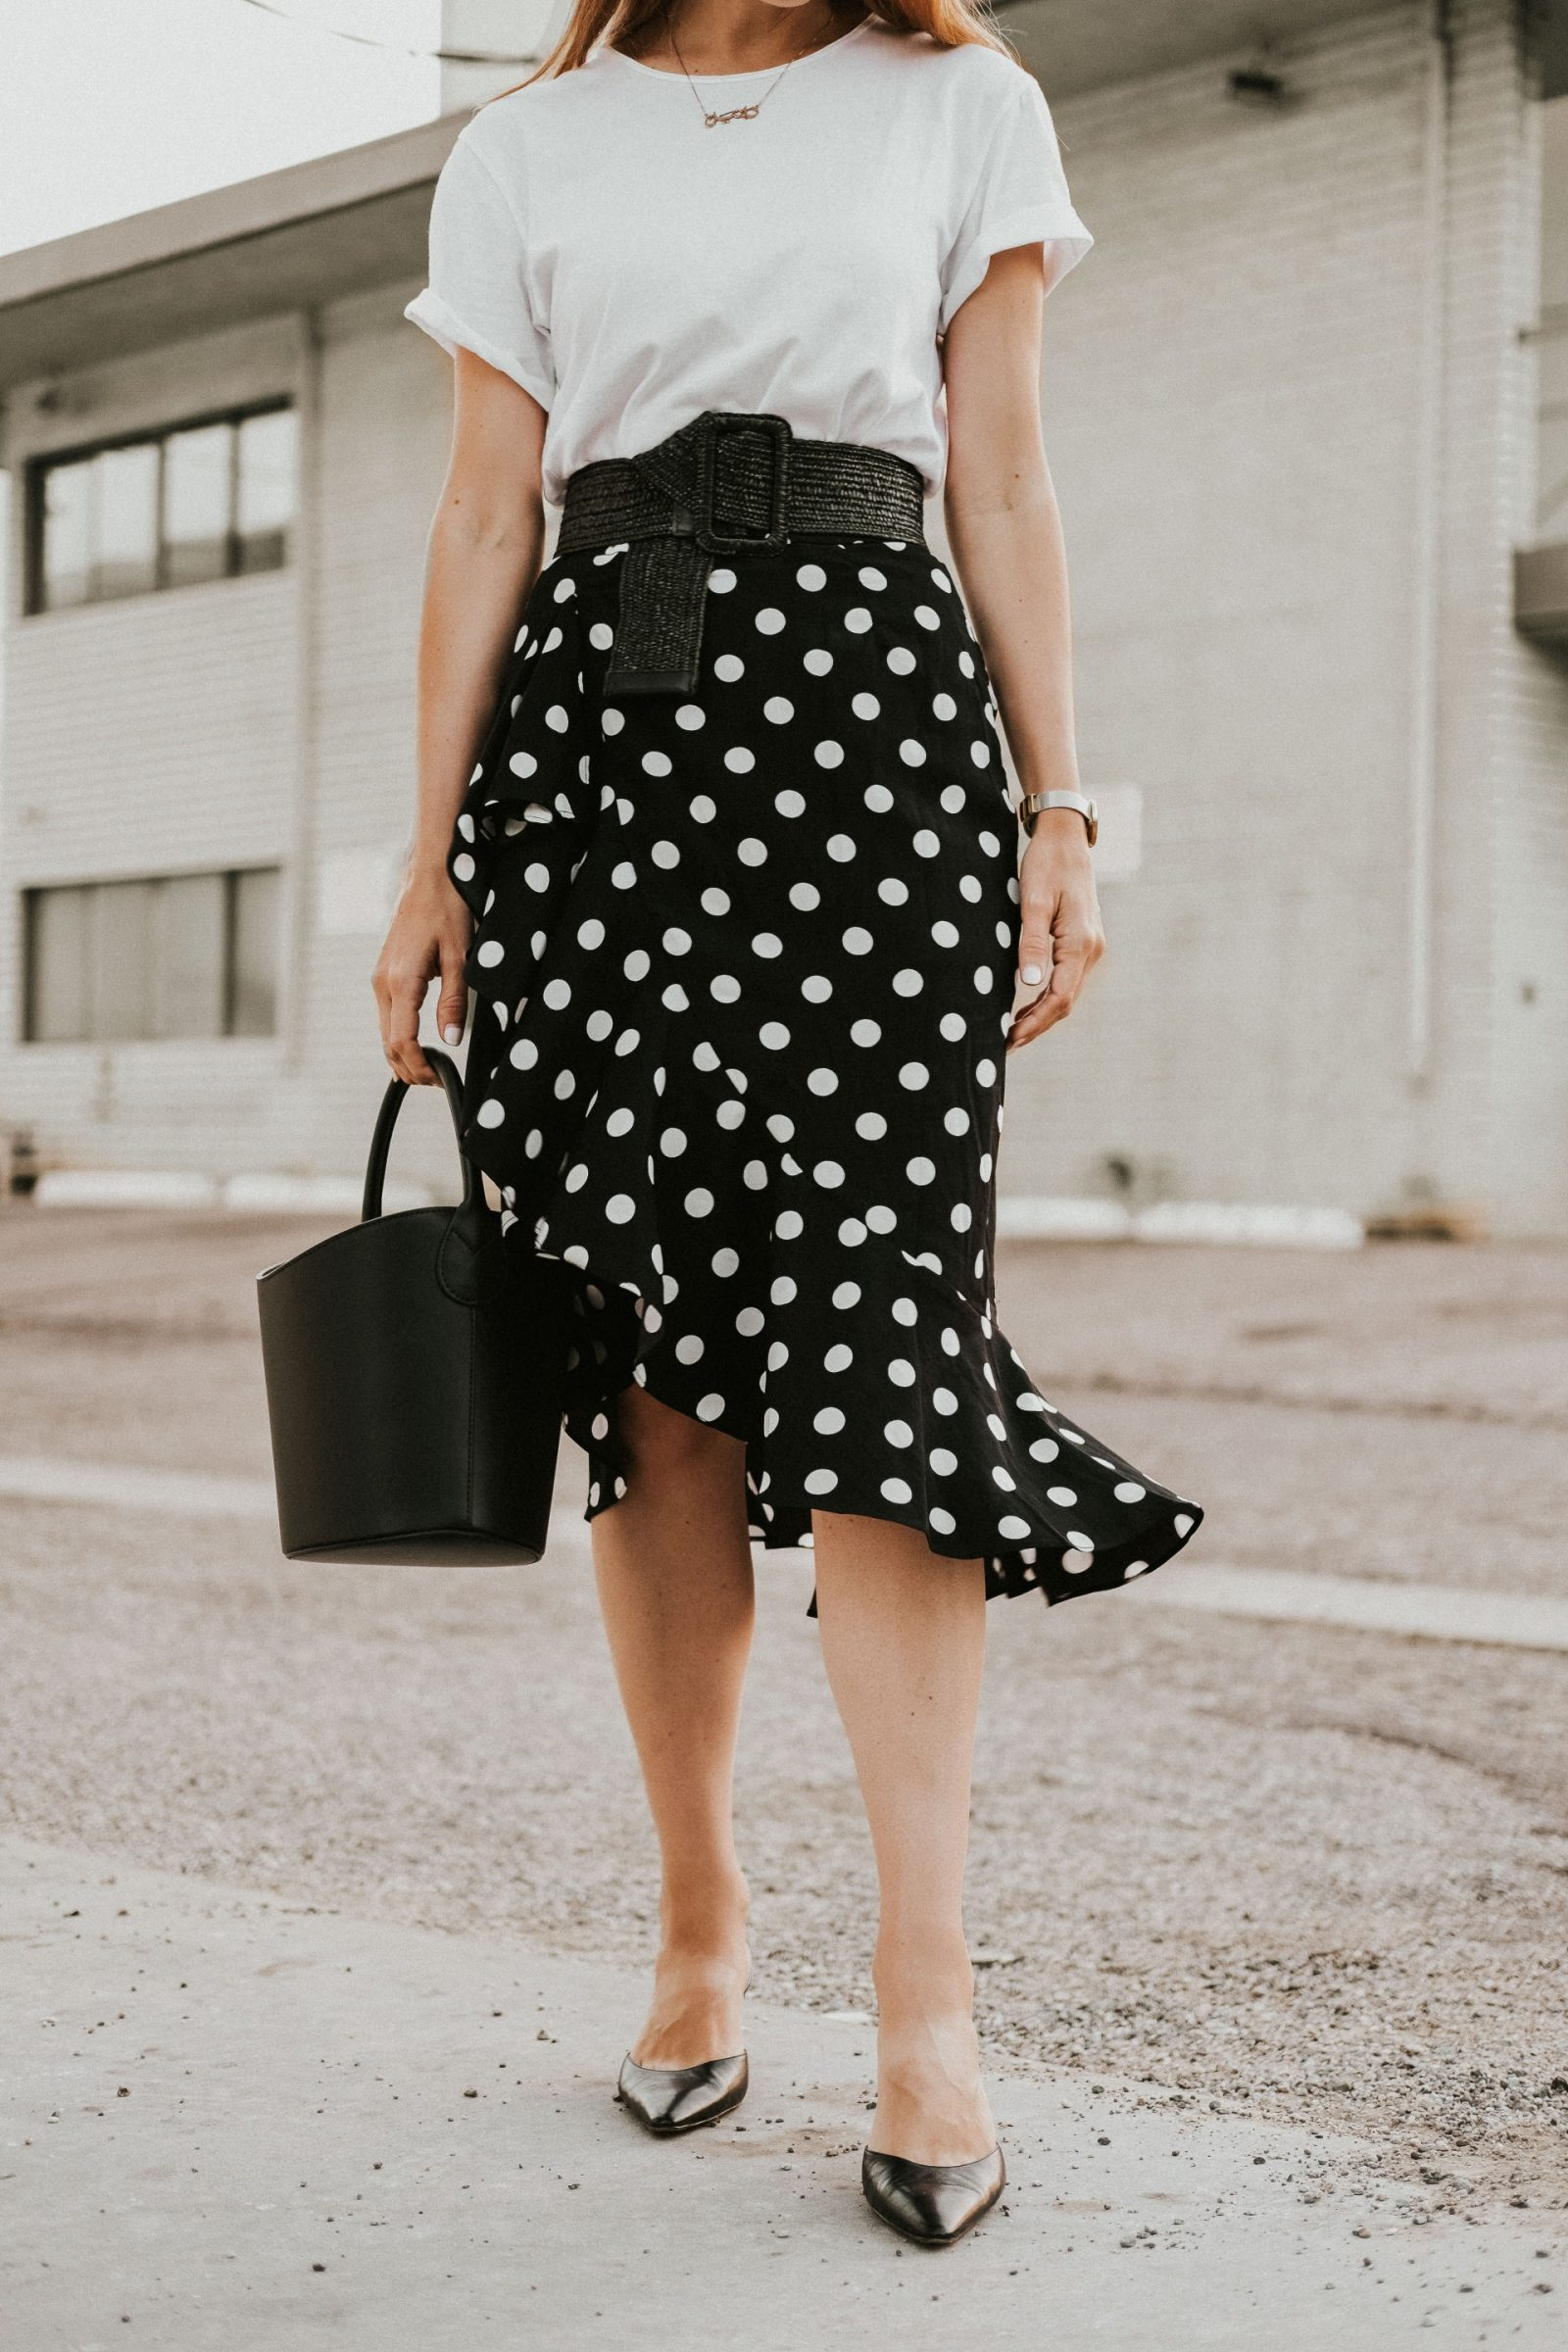 Black Polka dot midi skirt, polka dot midi skirt, how to style a polkadot skirt, polkadot midi skirt, polkadot midi skirt street style